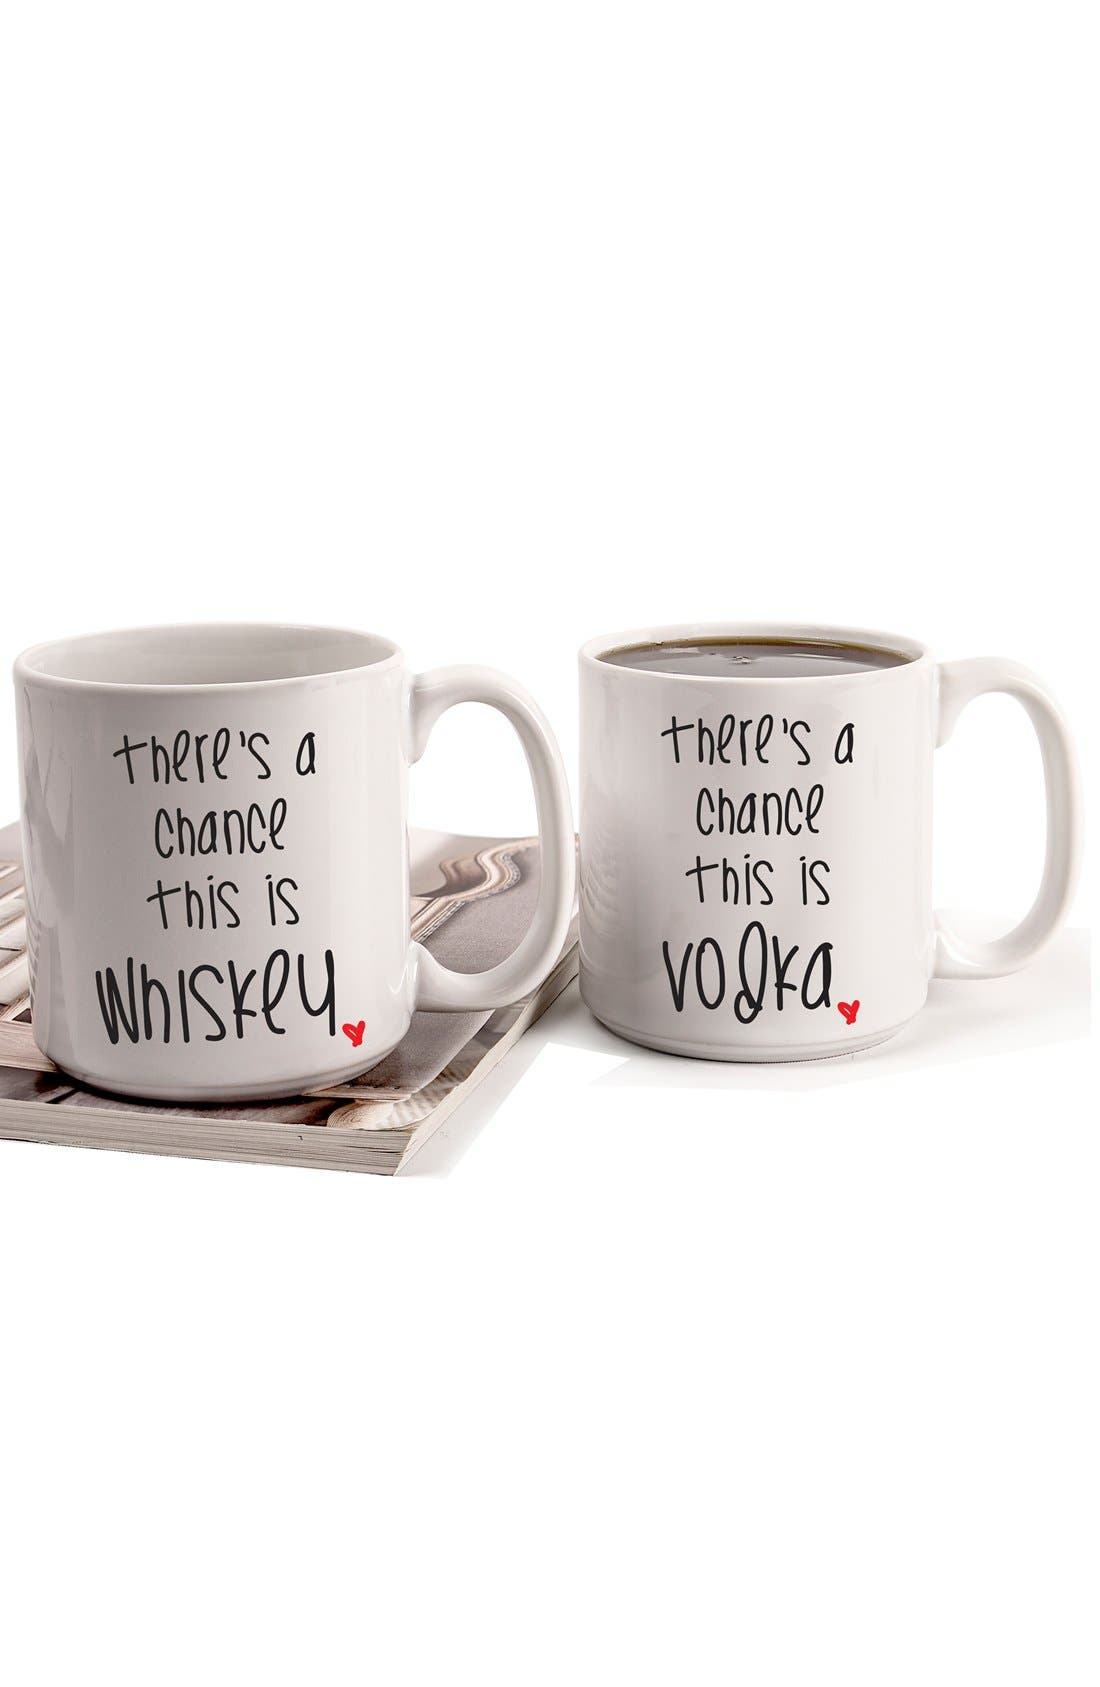 Alternate Image 2  - Cathy's Concepts 'There's a Chance' Ceramic Coffee Mugs (Set of 2)